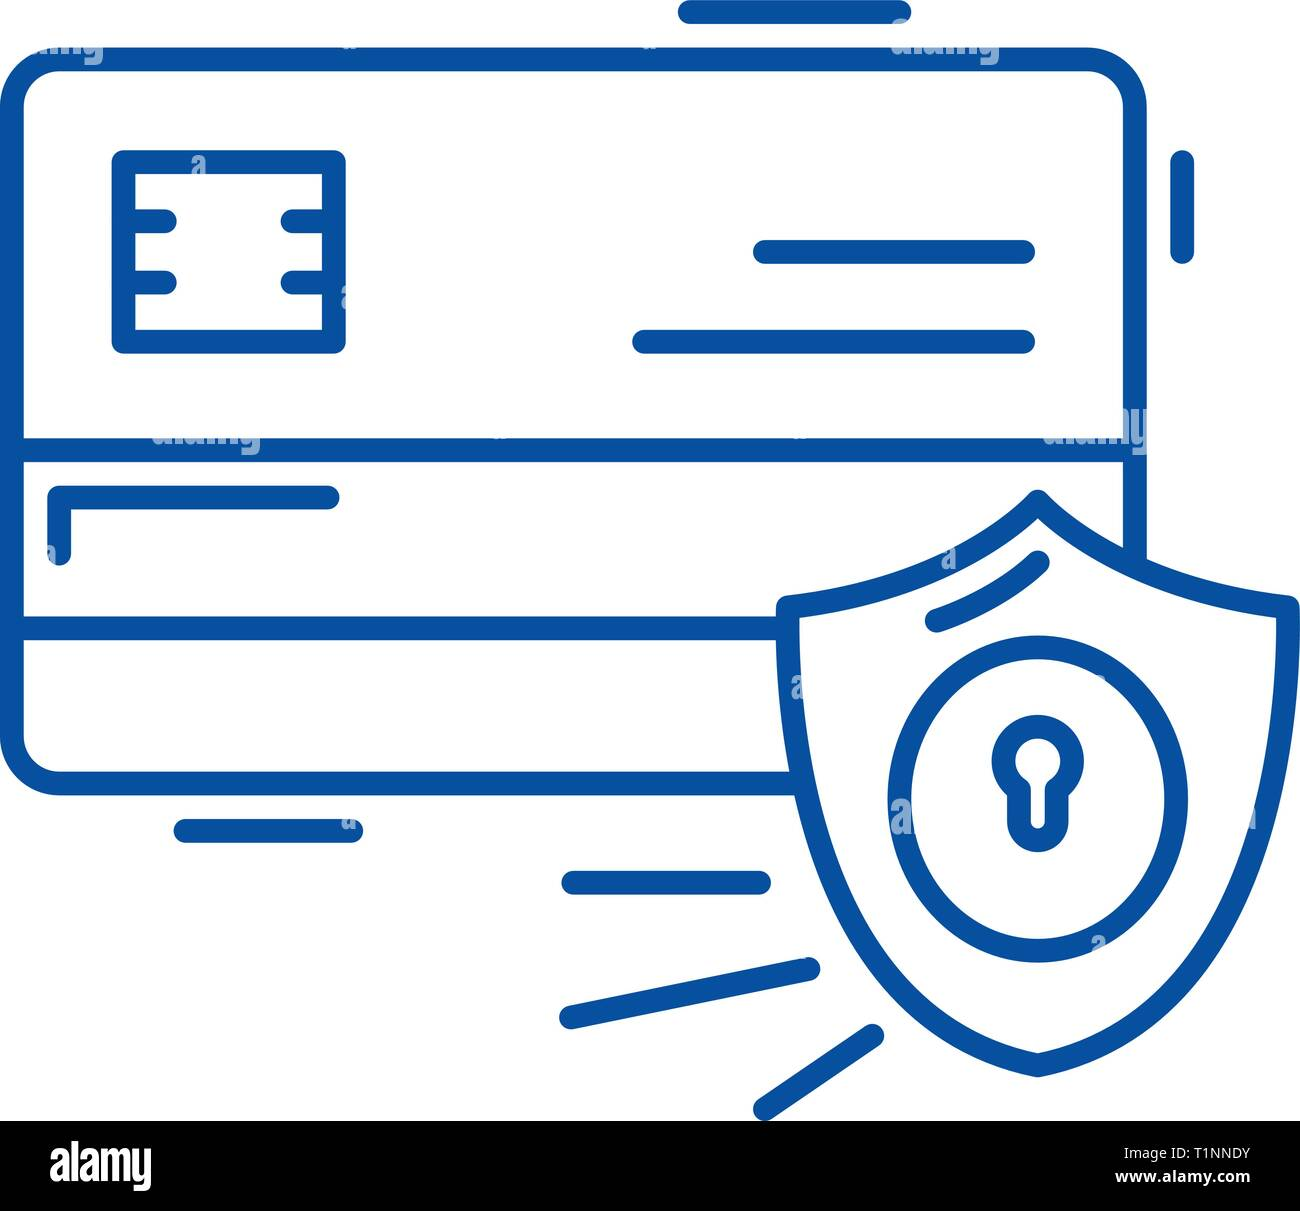 Payment security line icon concept. Payment security flat  vector symbol, sign, outline illustration. - Stock Image